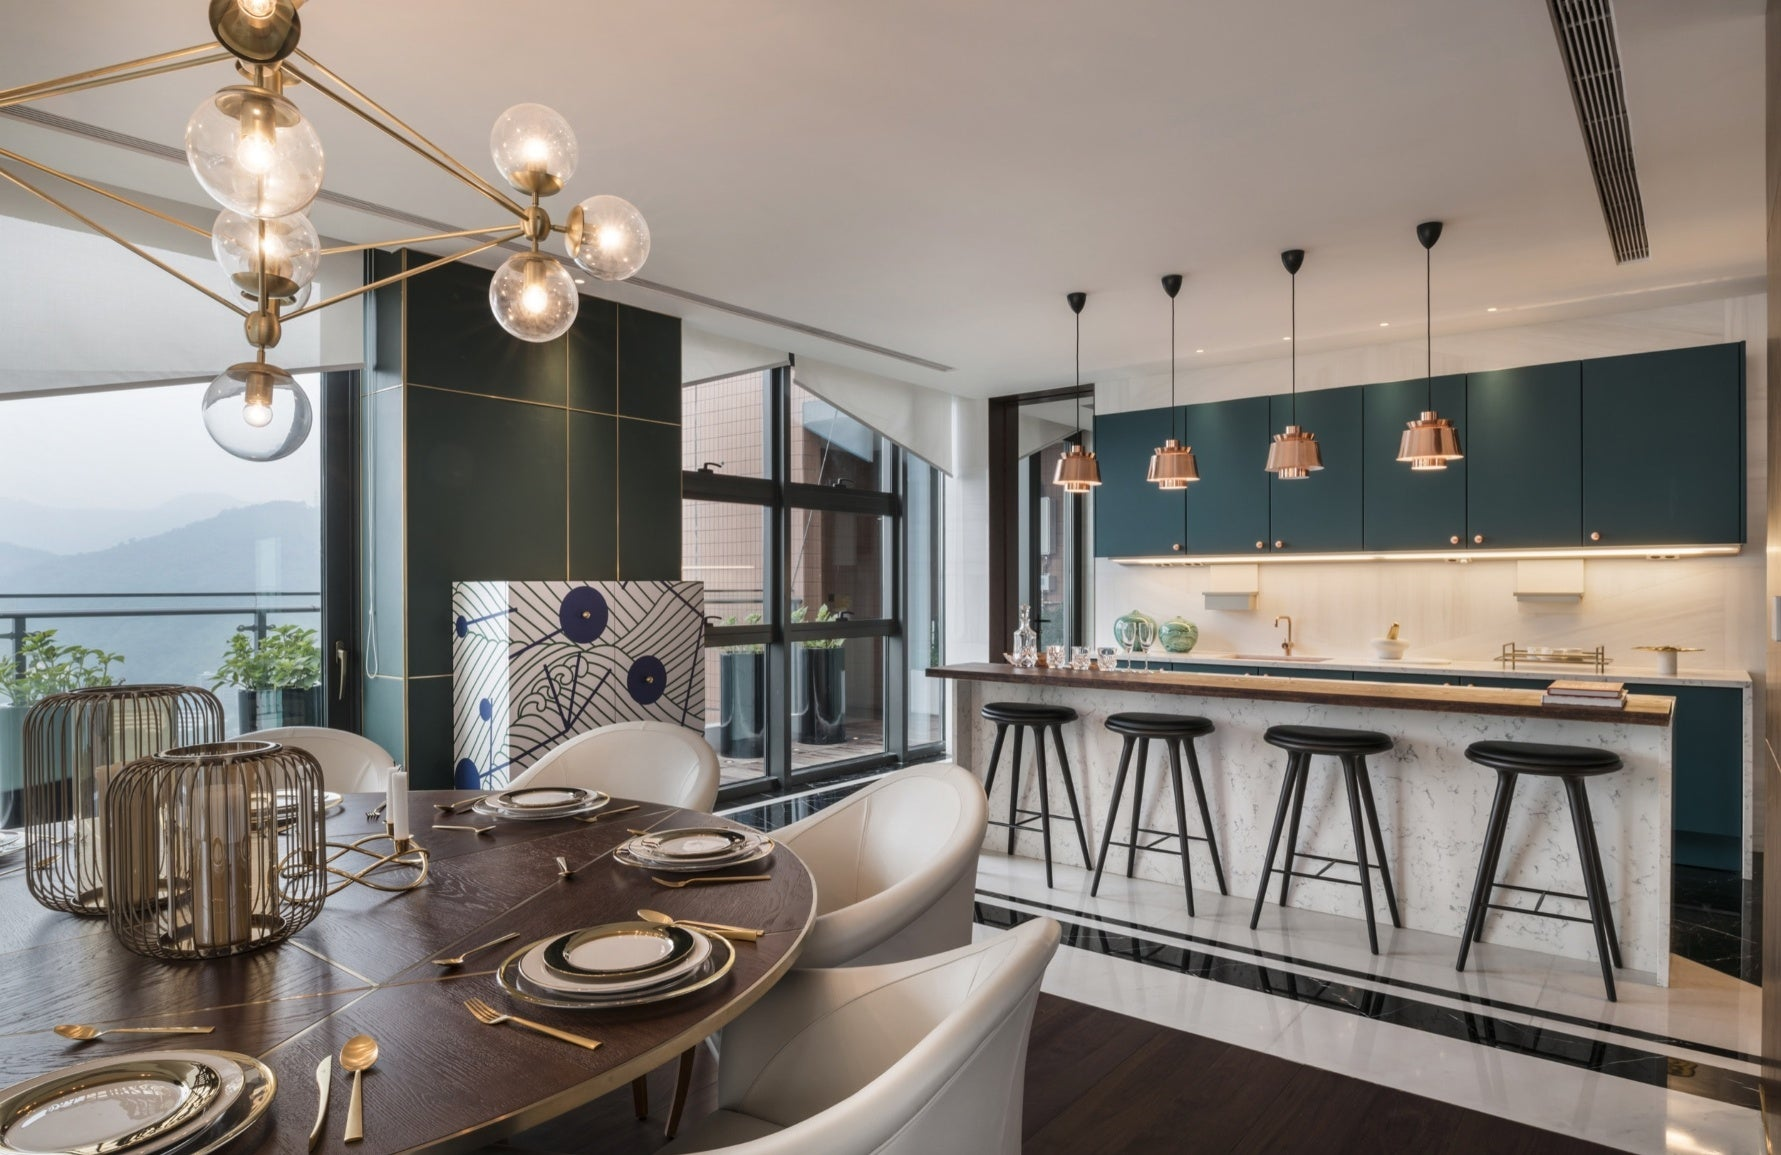 Green Dining Room – Dining Room Colour Palettes - Dining Room Colour Schemes & Colour Combination ideas - Read in the LuxDeco.com Style Guide